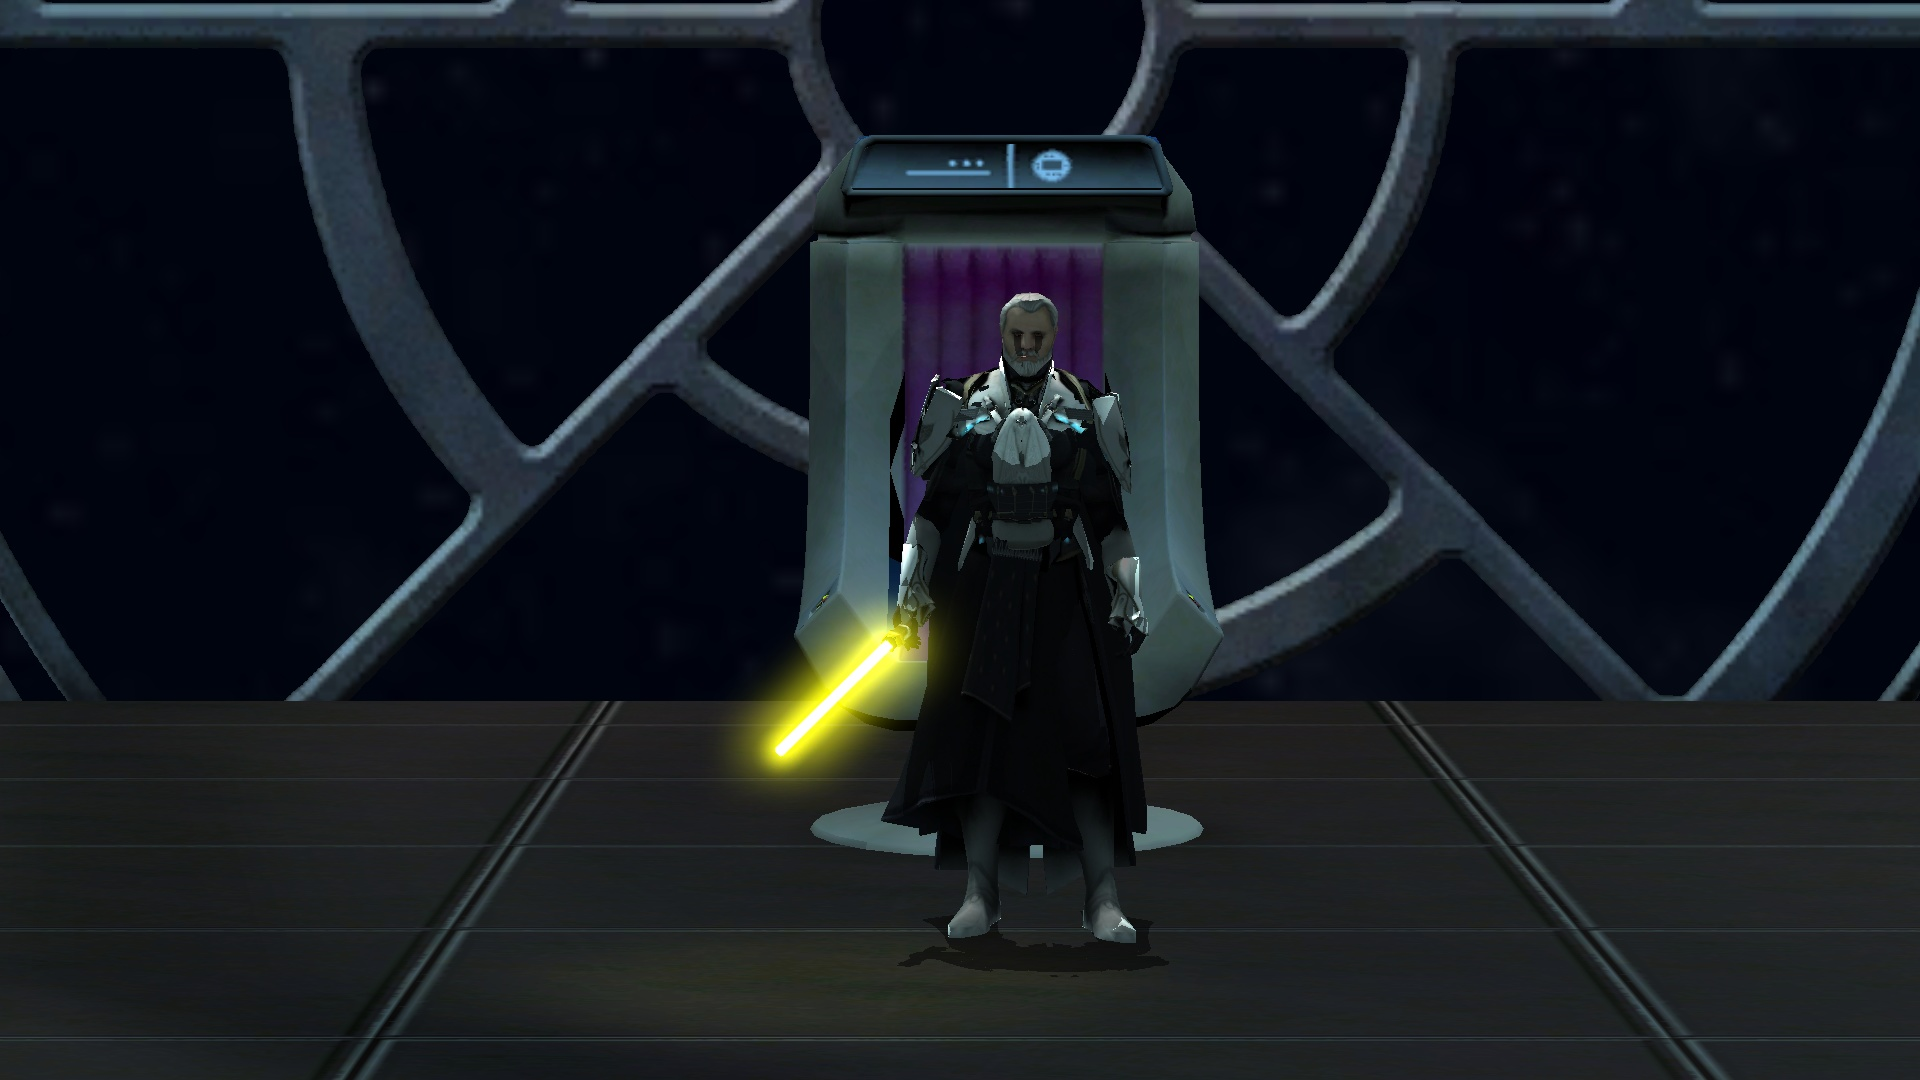 Valkorion The Emperor Image Revan S Adventure Mod For Star Wars Jedi Academy Mod Db When the last of his marks are erased. star wars jedi academy mod db